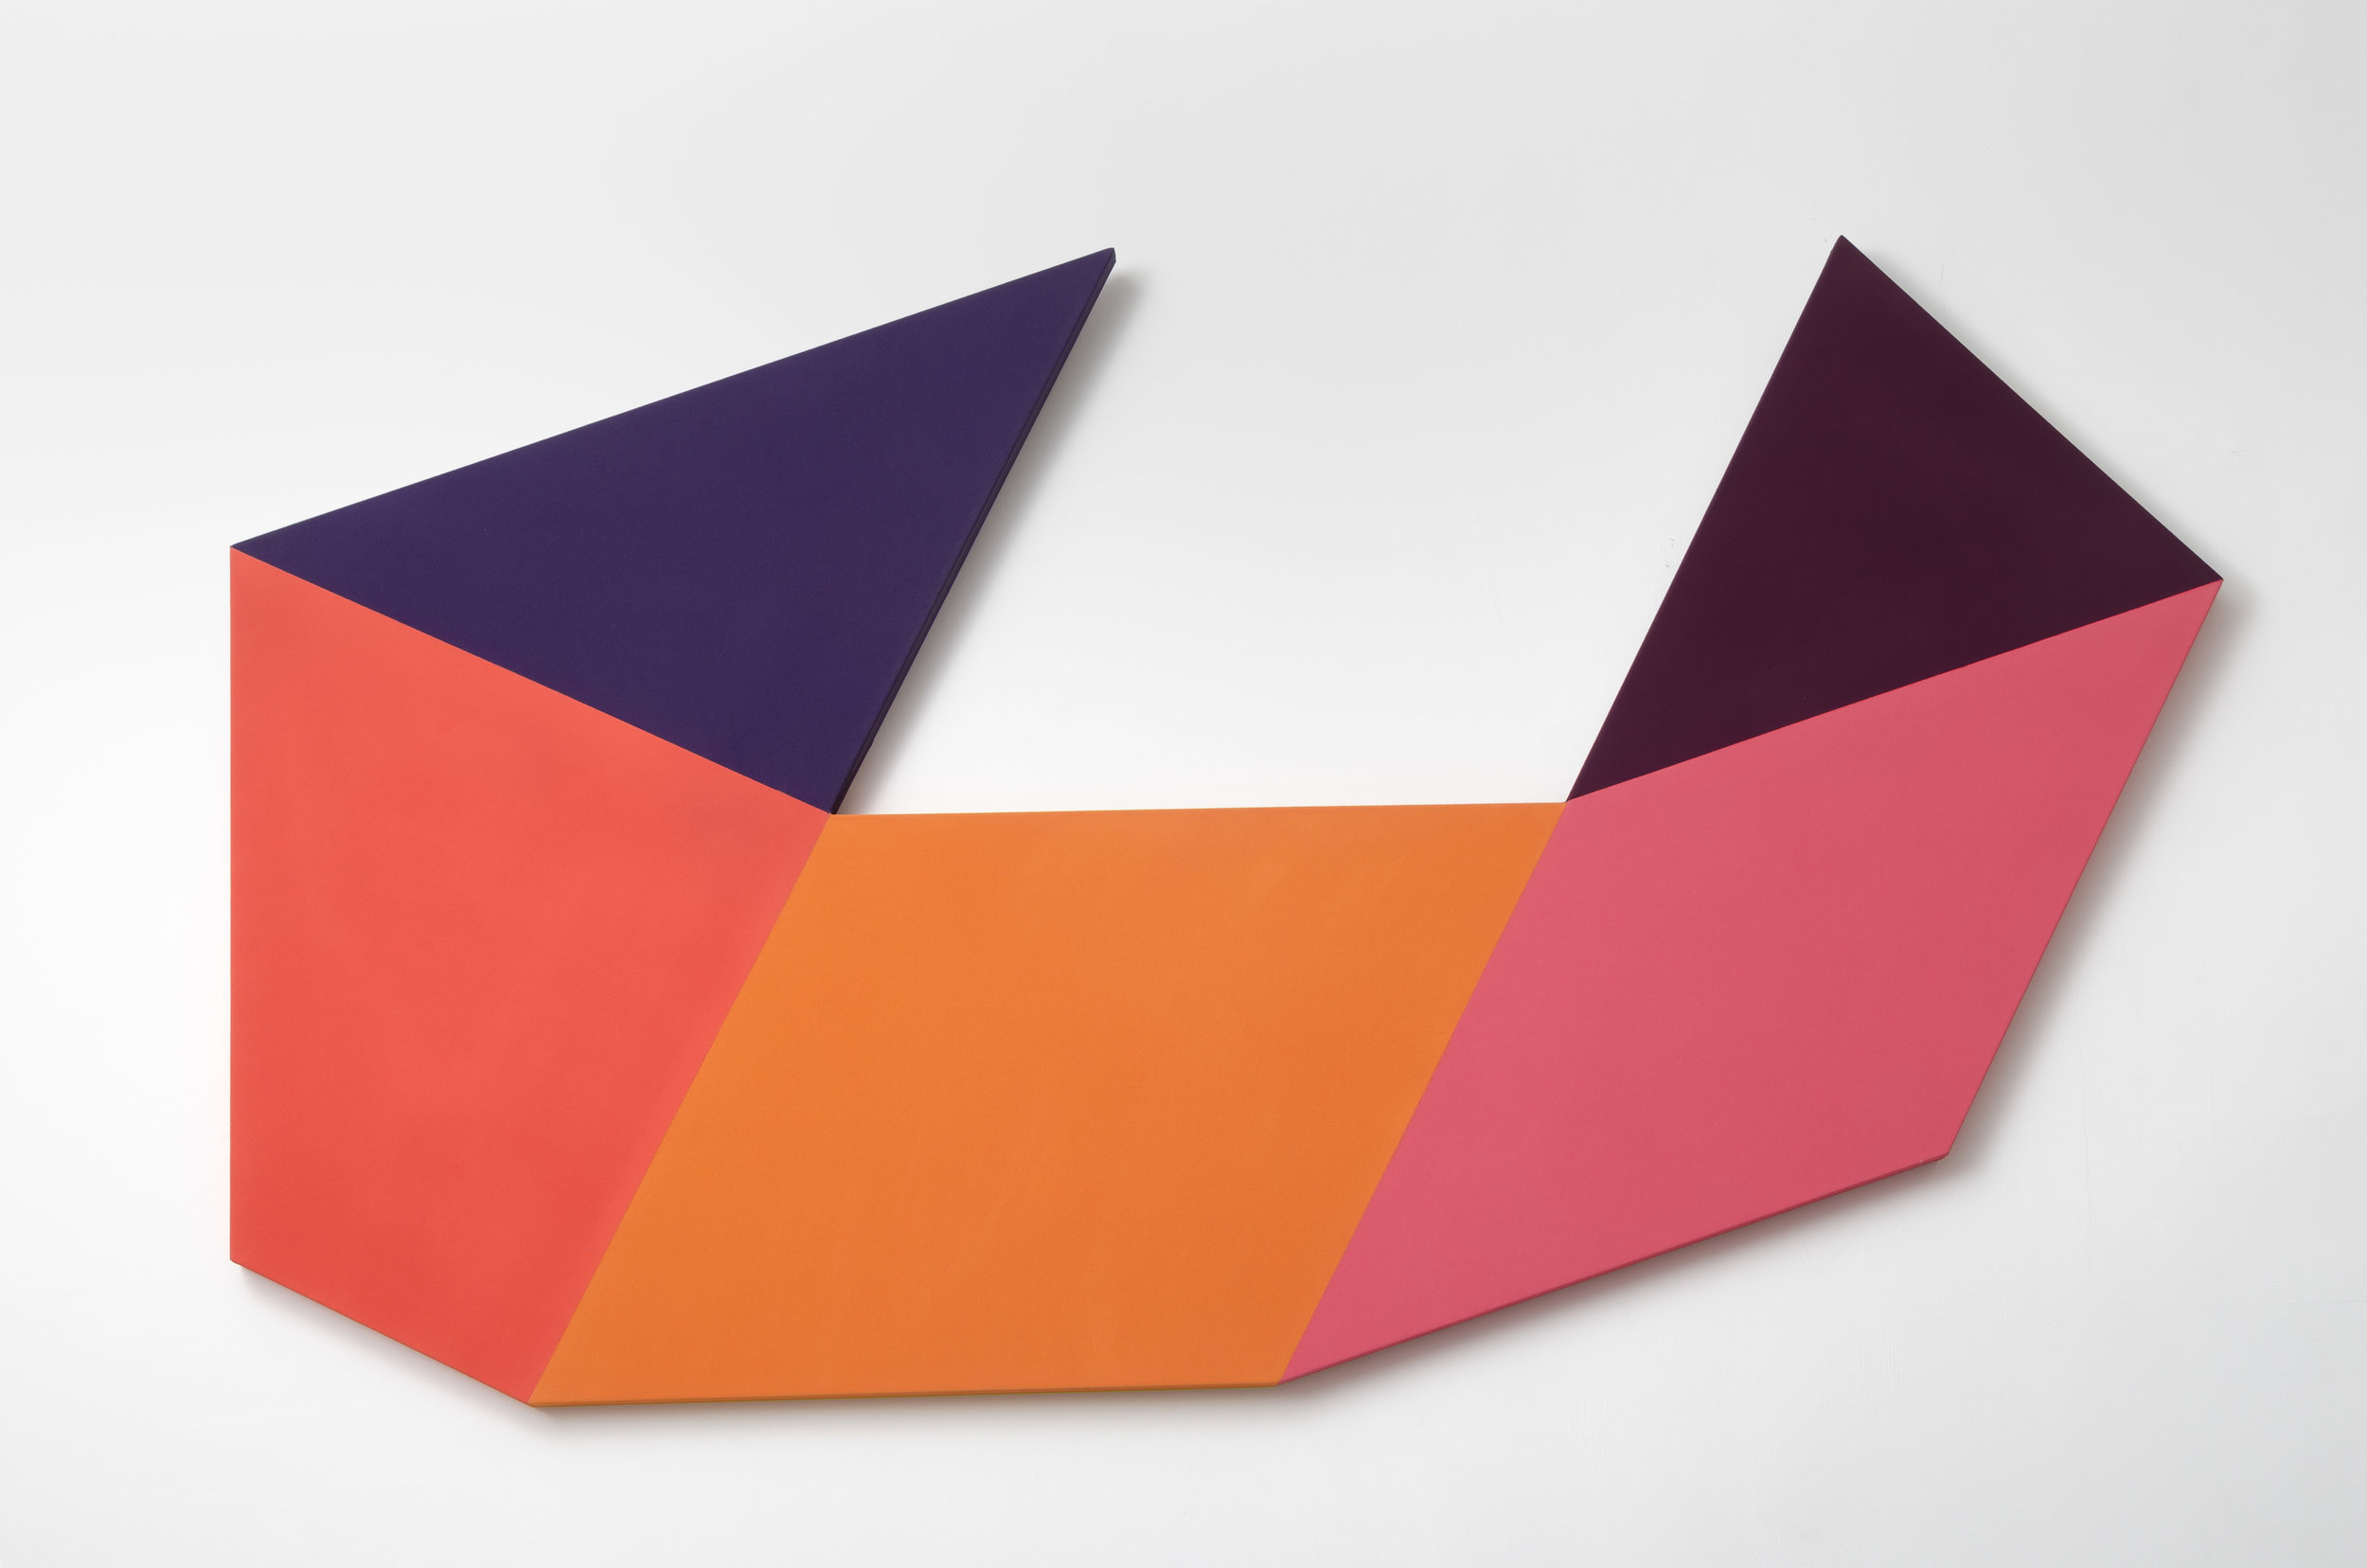 Mokha Laget, b. 1959   Bow , 2017  acrylic and clay pigment on shaped canvas  51 x 86 inches; (129.5 x 218.4 cm)